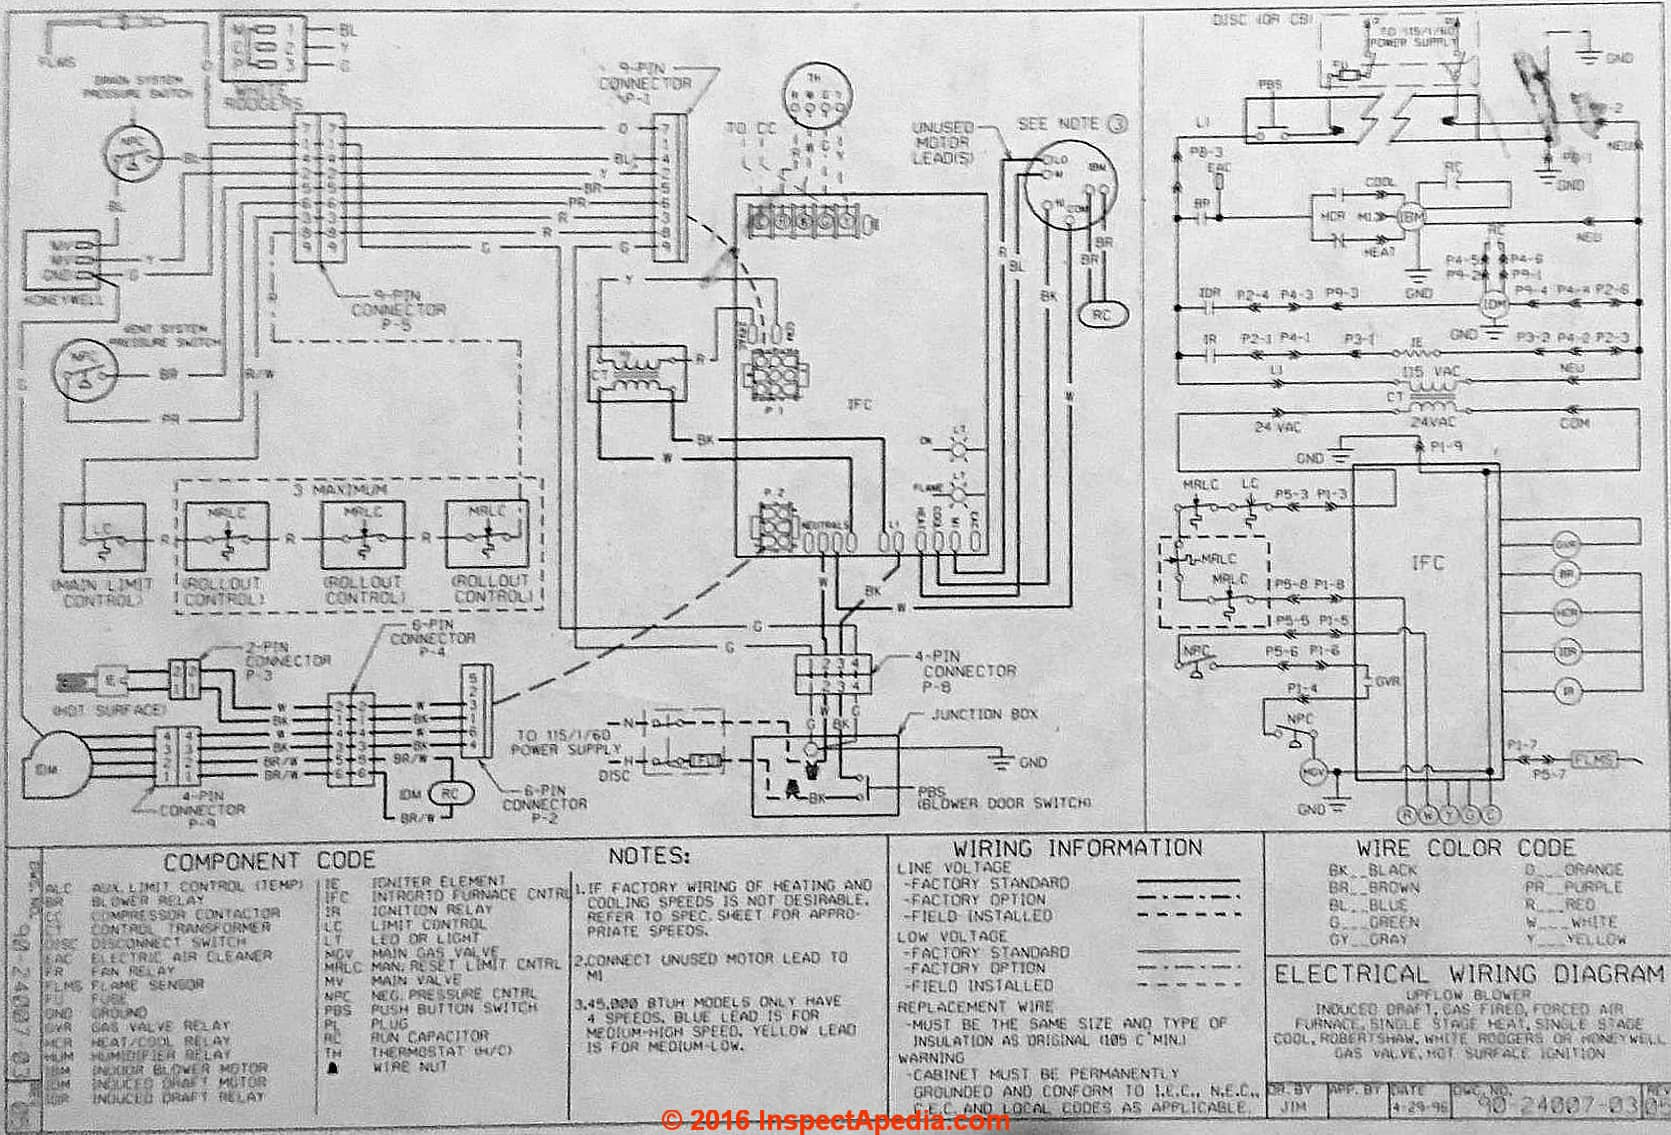 Rheem_AHU_Wiring_Diagram_IAP?resize=665%2C452&ssl=1 rheem ac unit wiring diagram wiring diagram  at mifinder.co